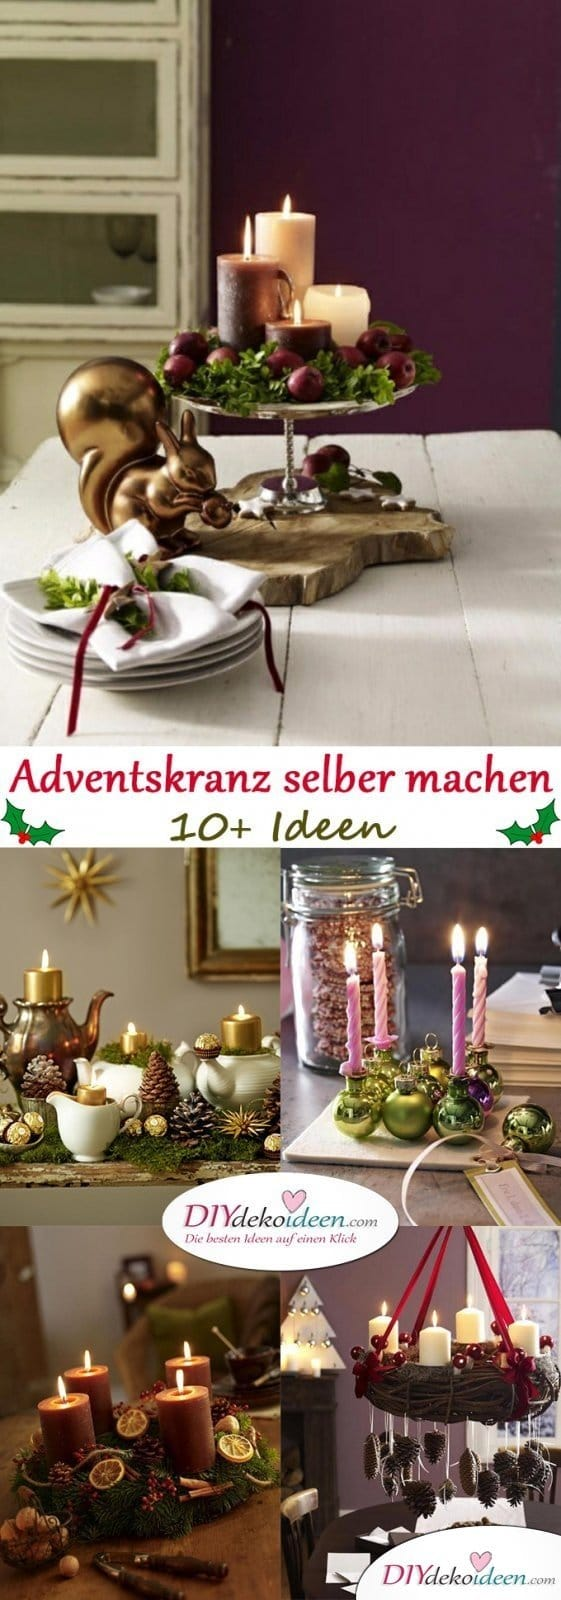 adventskranz selber machen elegante klassische und romantische ideen. Black Bedroom Furniture Sets. Home Design Ideas